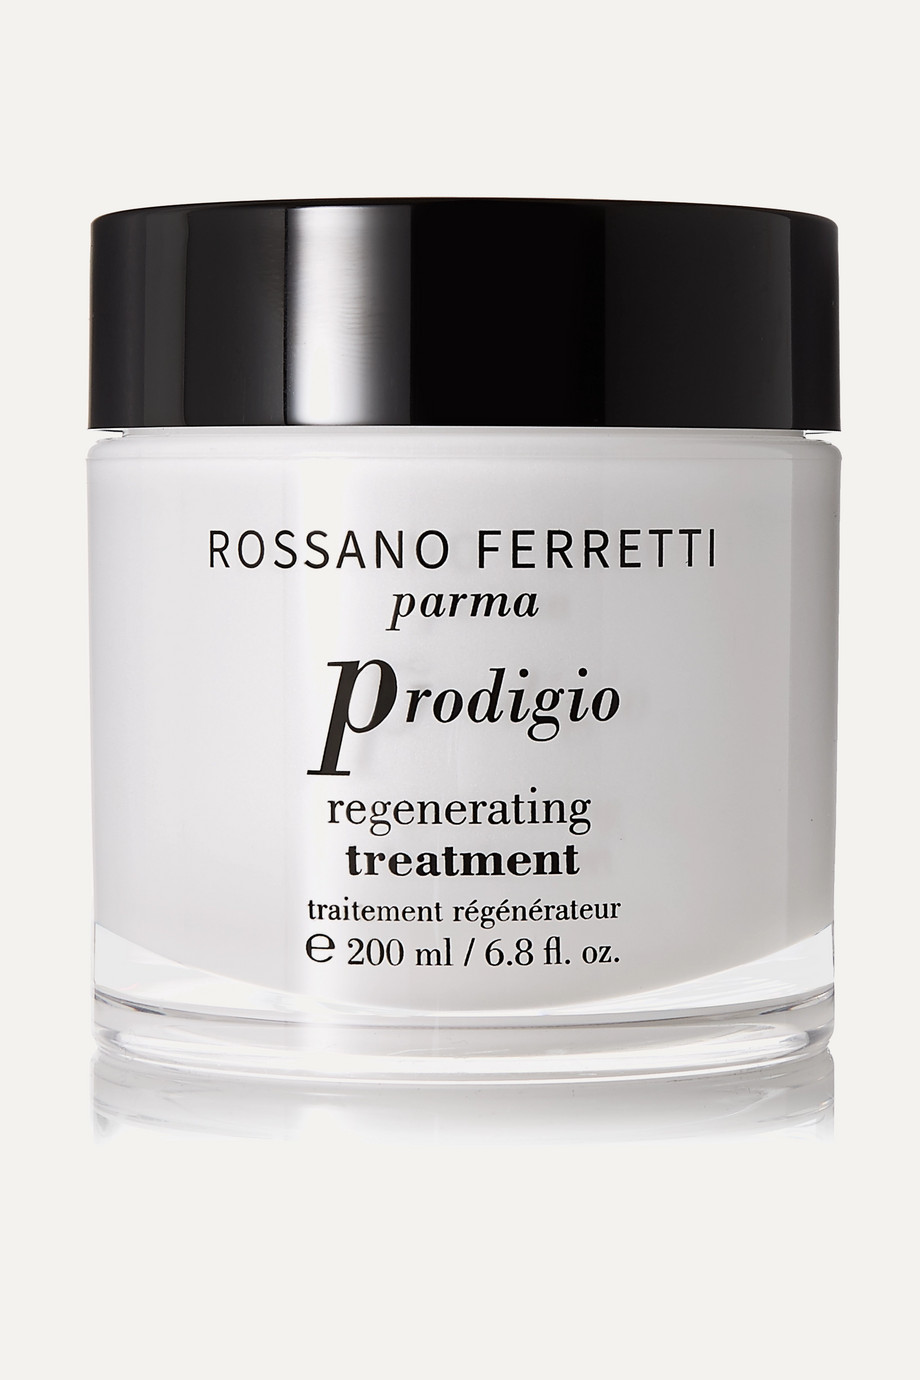 ROSSANO FERRETTI Parma Prodigio Regenerating Treatment, 200ml